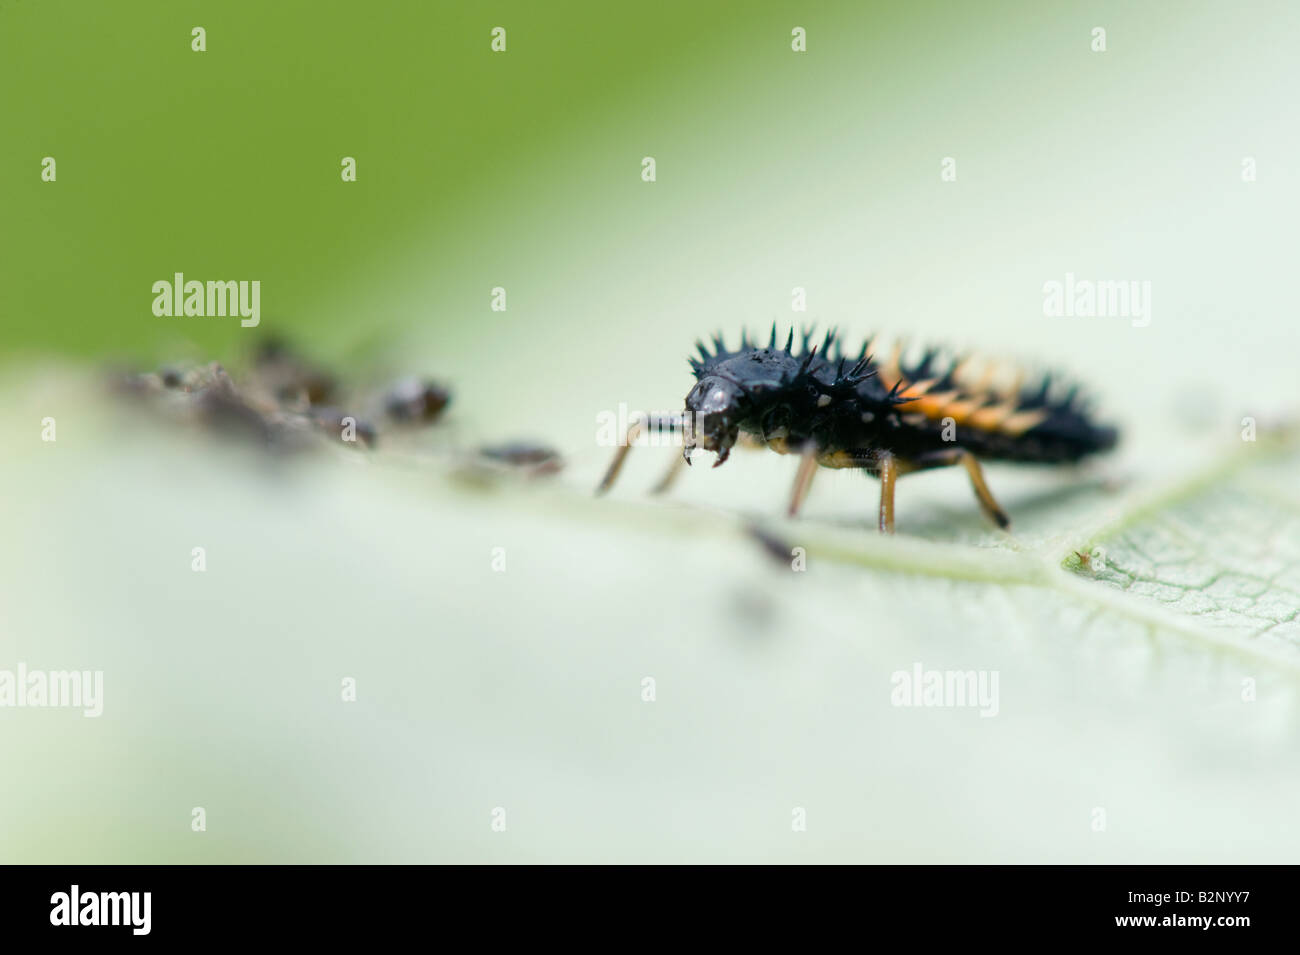 Harmonia axyridis. Harlequin ladybird larvae on a leaf with blackly aphids. UK Stock Photo